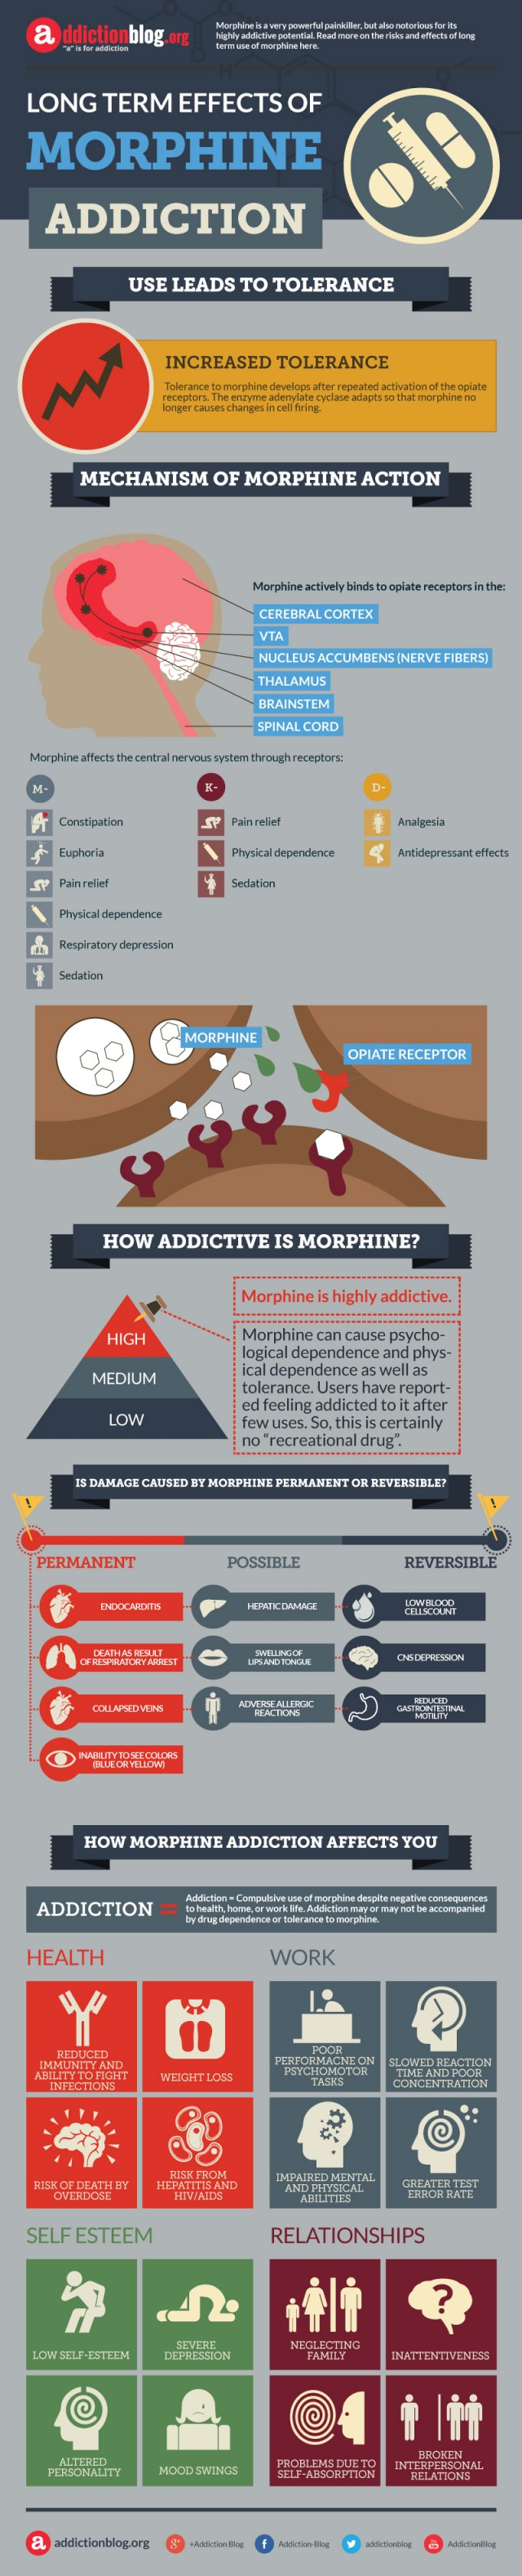 Effects of morphine abuse and addiction (INFOGRAPHIC)